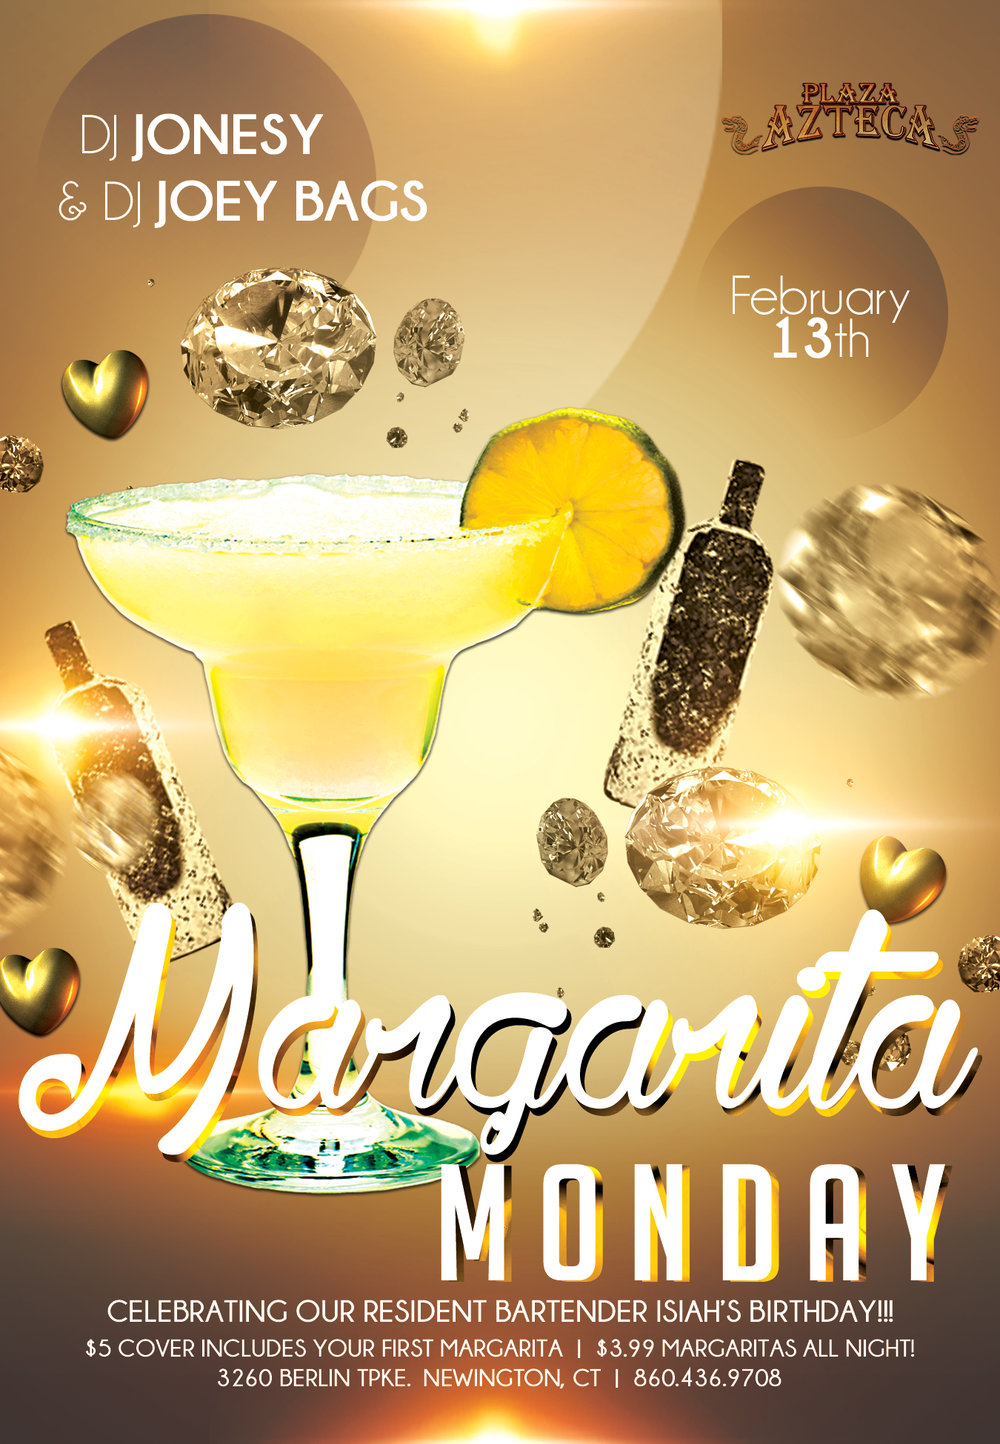 Monday, February 13th   join me at Plaza Azteca in Newington, CT for Margarita Monday with music by Joey Bags & yours truly 9pm-close.  $3.99 Margaritas all night long!  We will also be celebrating our resident bartender Isiah's birthday!!!  Meet us there! $5 Cover.